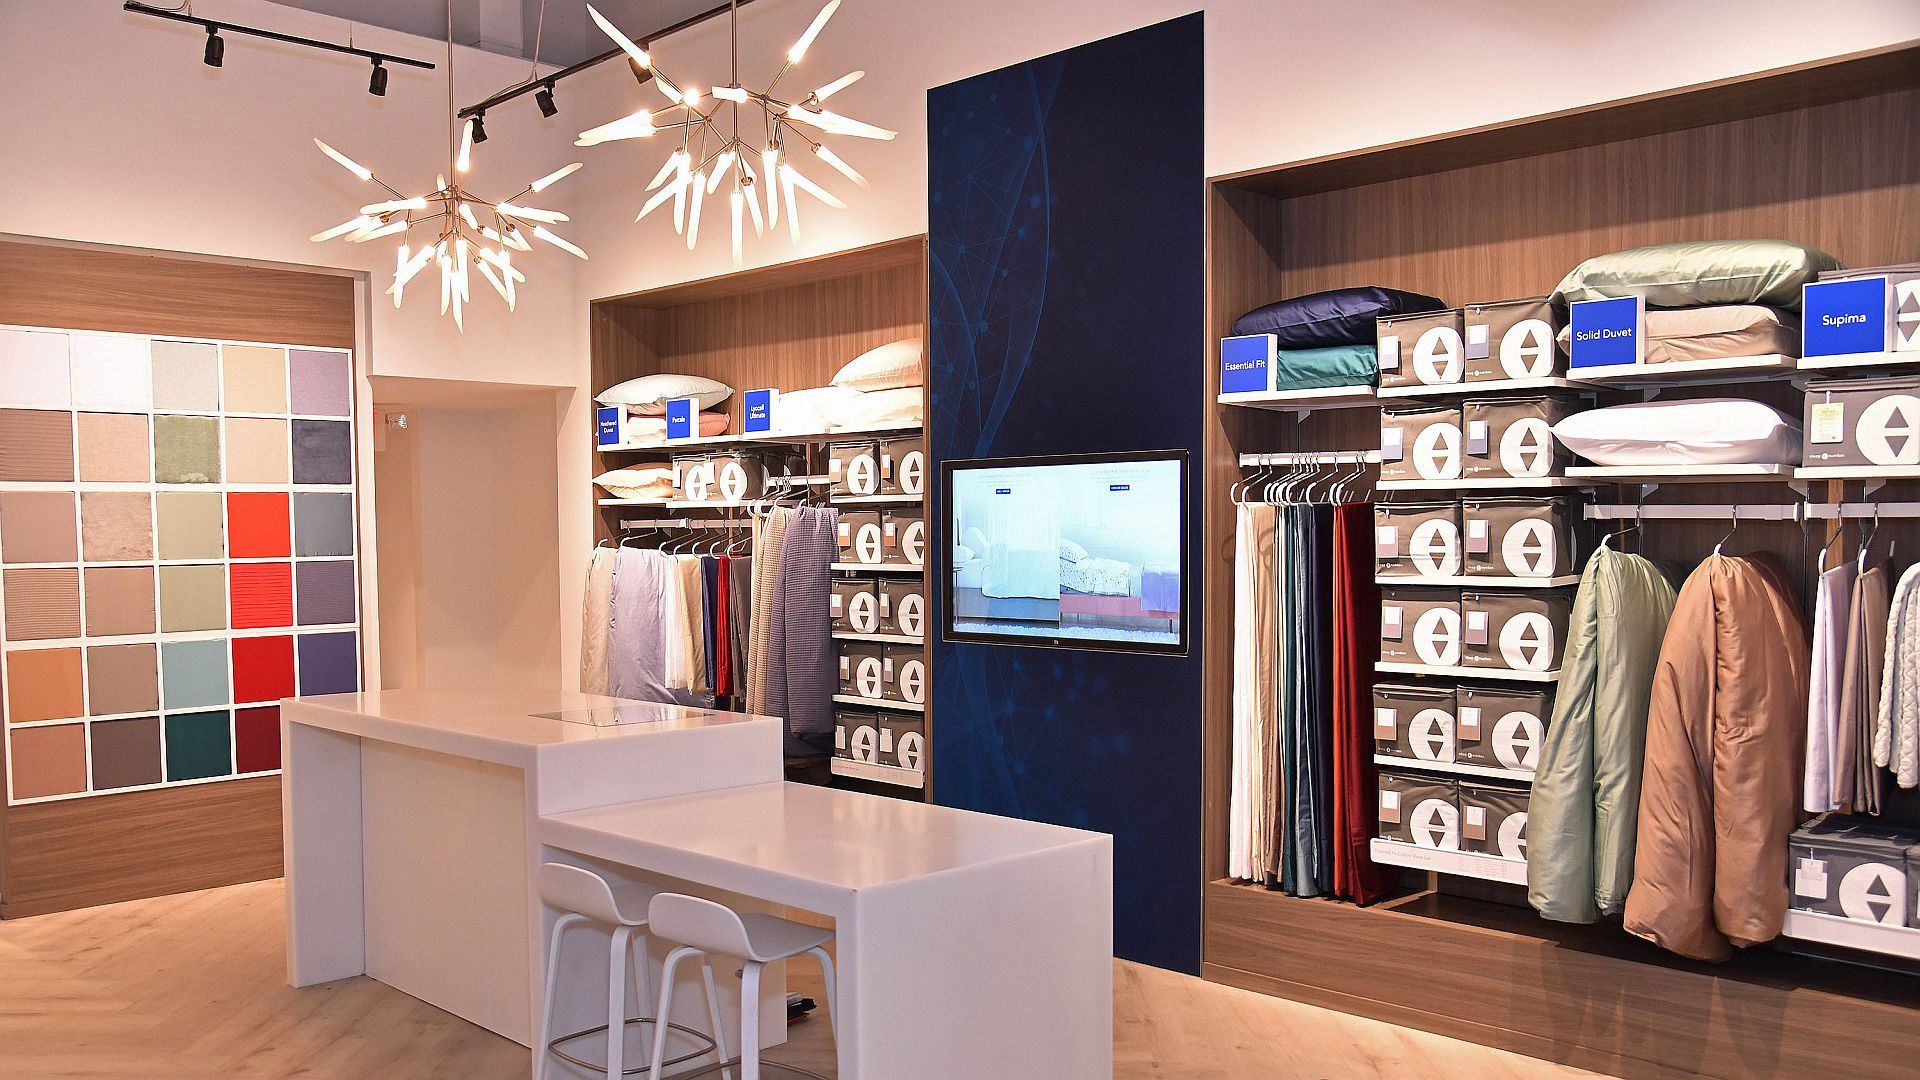 Fulfilling Retail Experiences - Graphic Design, Production, Rollouts & Installation